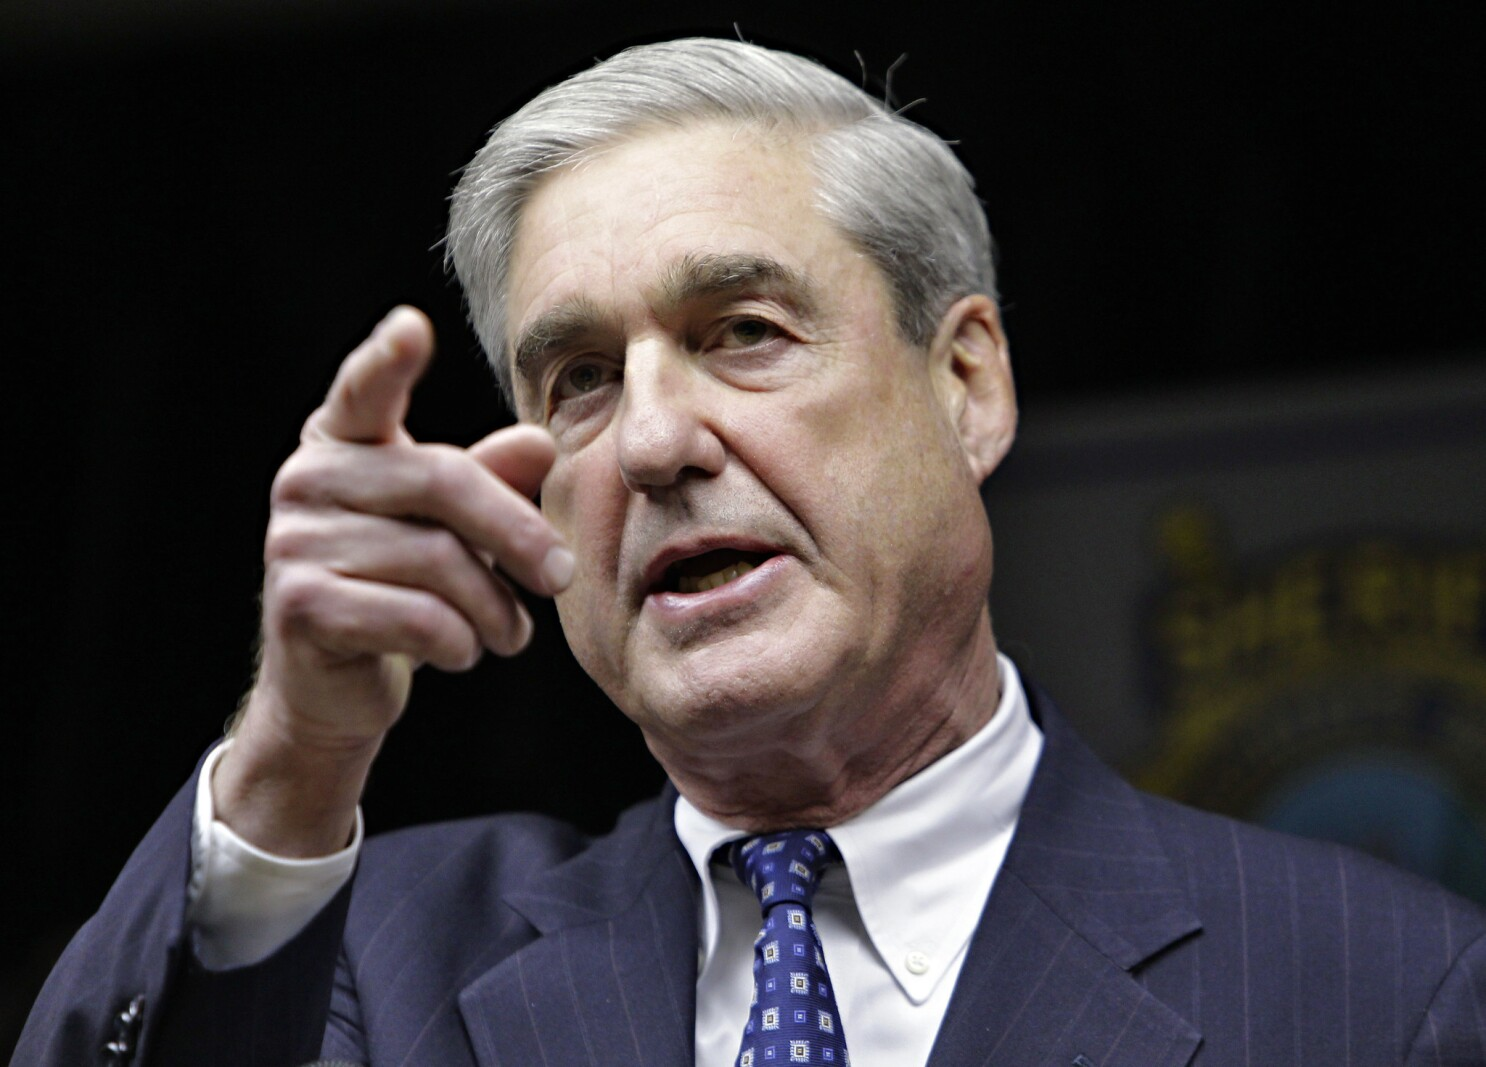 Here's what to expect when Robert S. Mueller III testifies about the Russia investigation